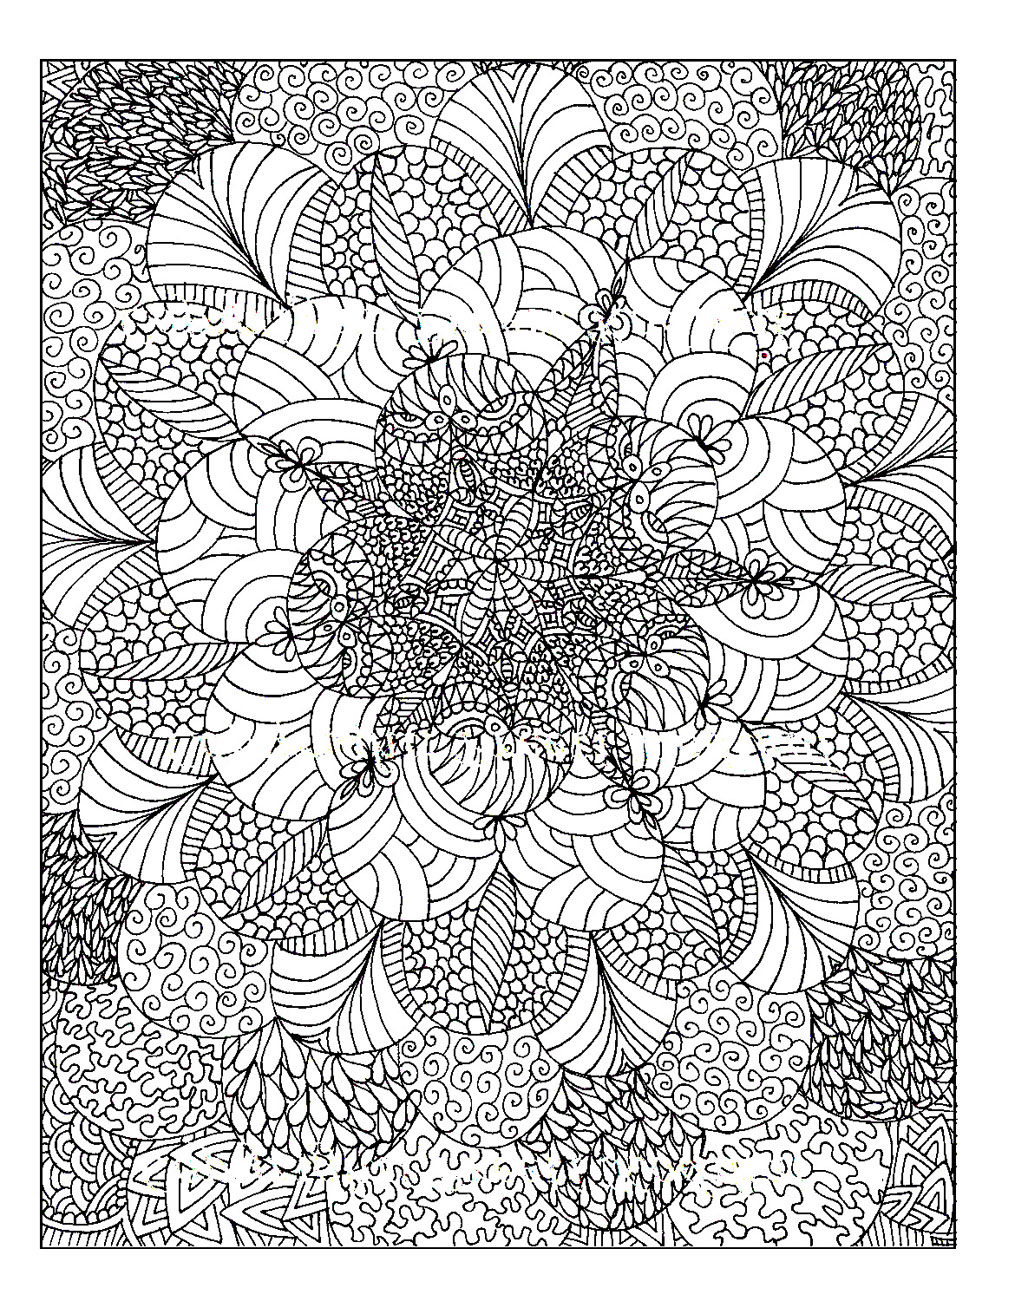 Colouring for adults anti stress colouring printables - Coloriage anti stress pour adulte a imprimer ...